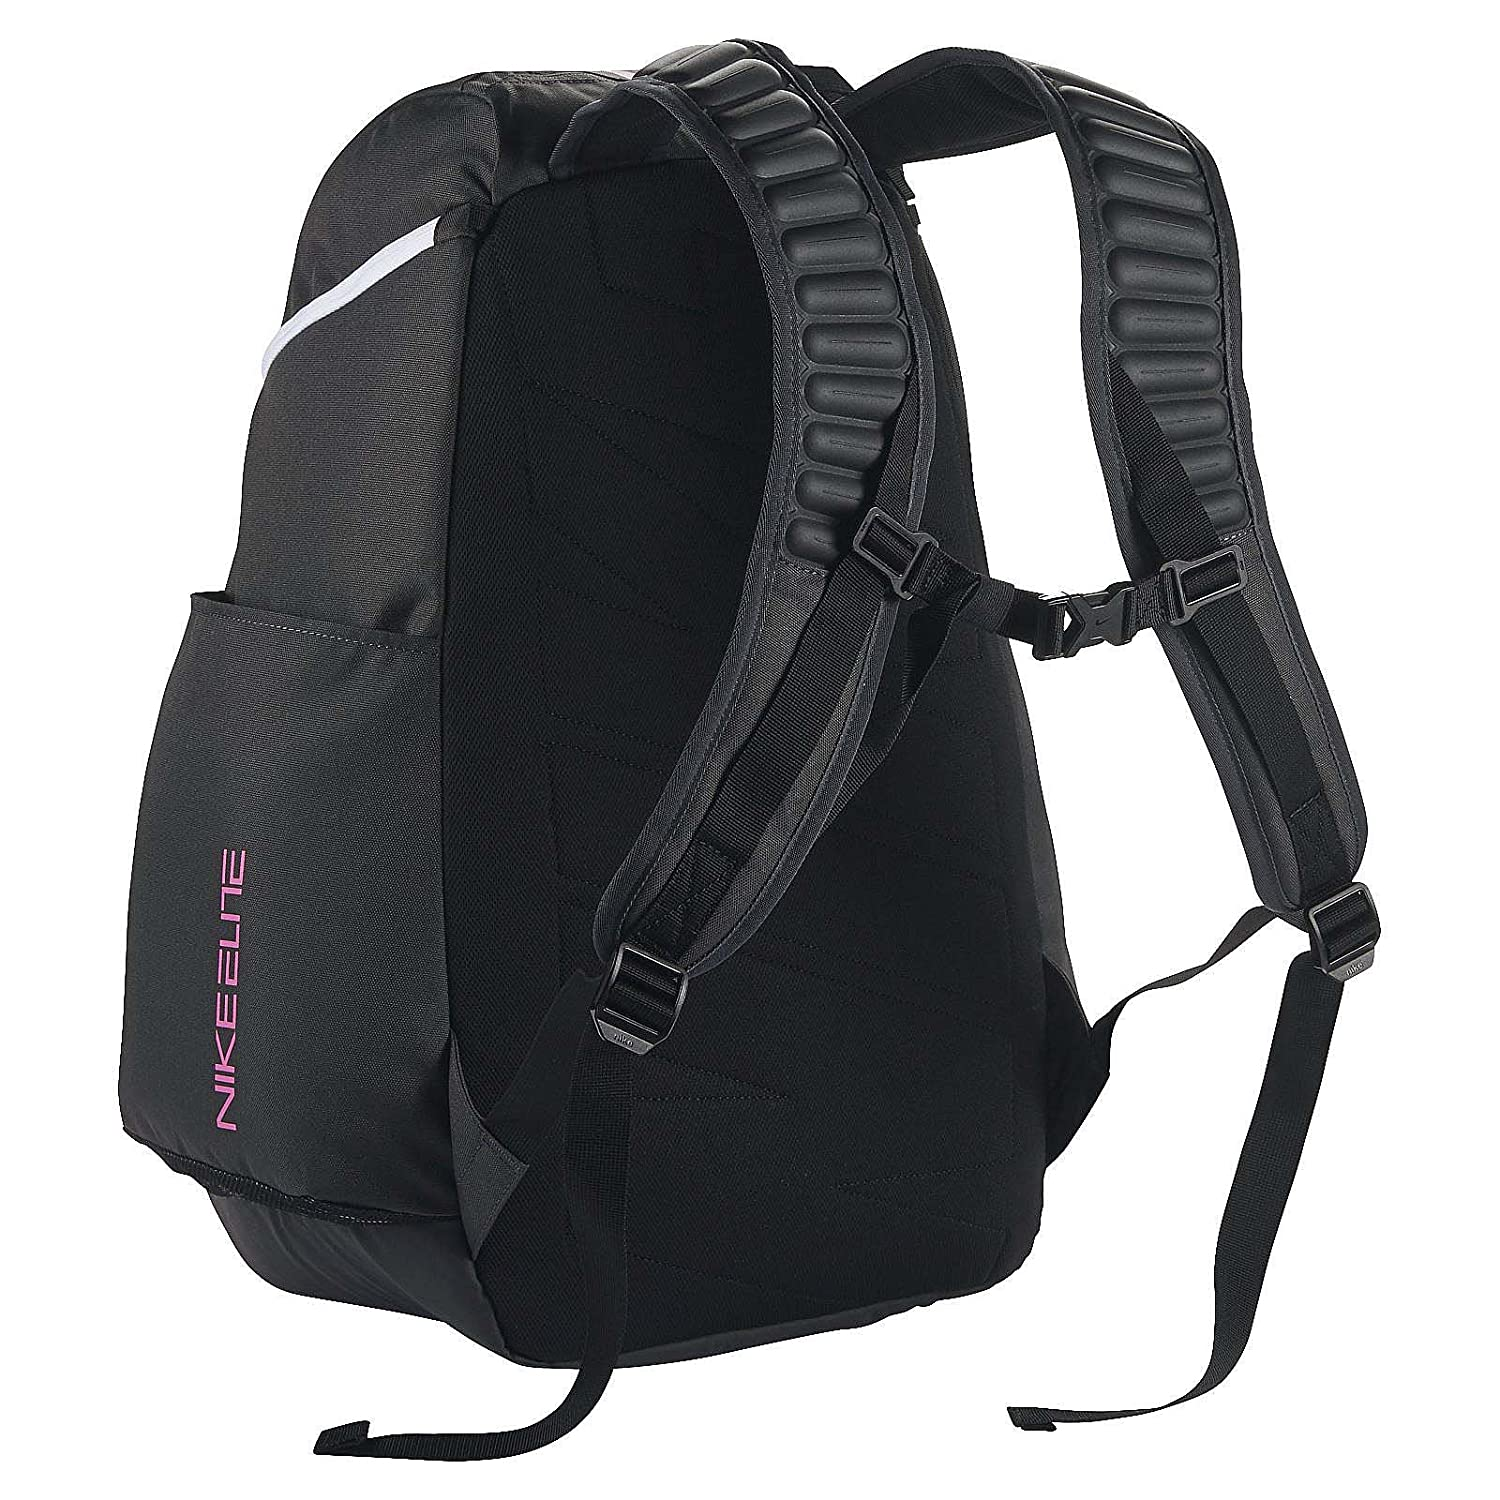 136725b0c6 Amazon.com  Nike Hoops Elite Max Air Team 2.0 Basketball Backpack  Anthracite Black Pinkfire II Size One Size  Sports   Outdoors